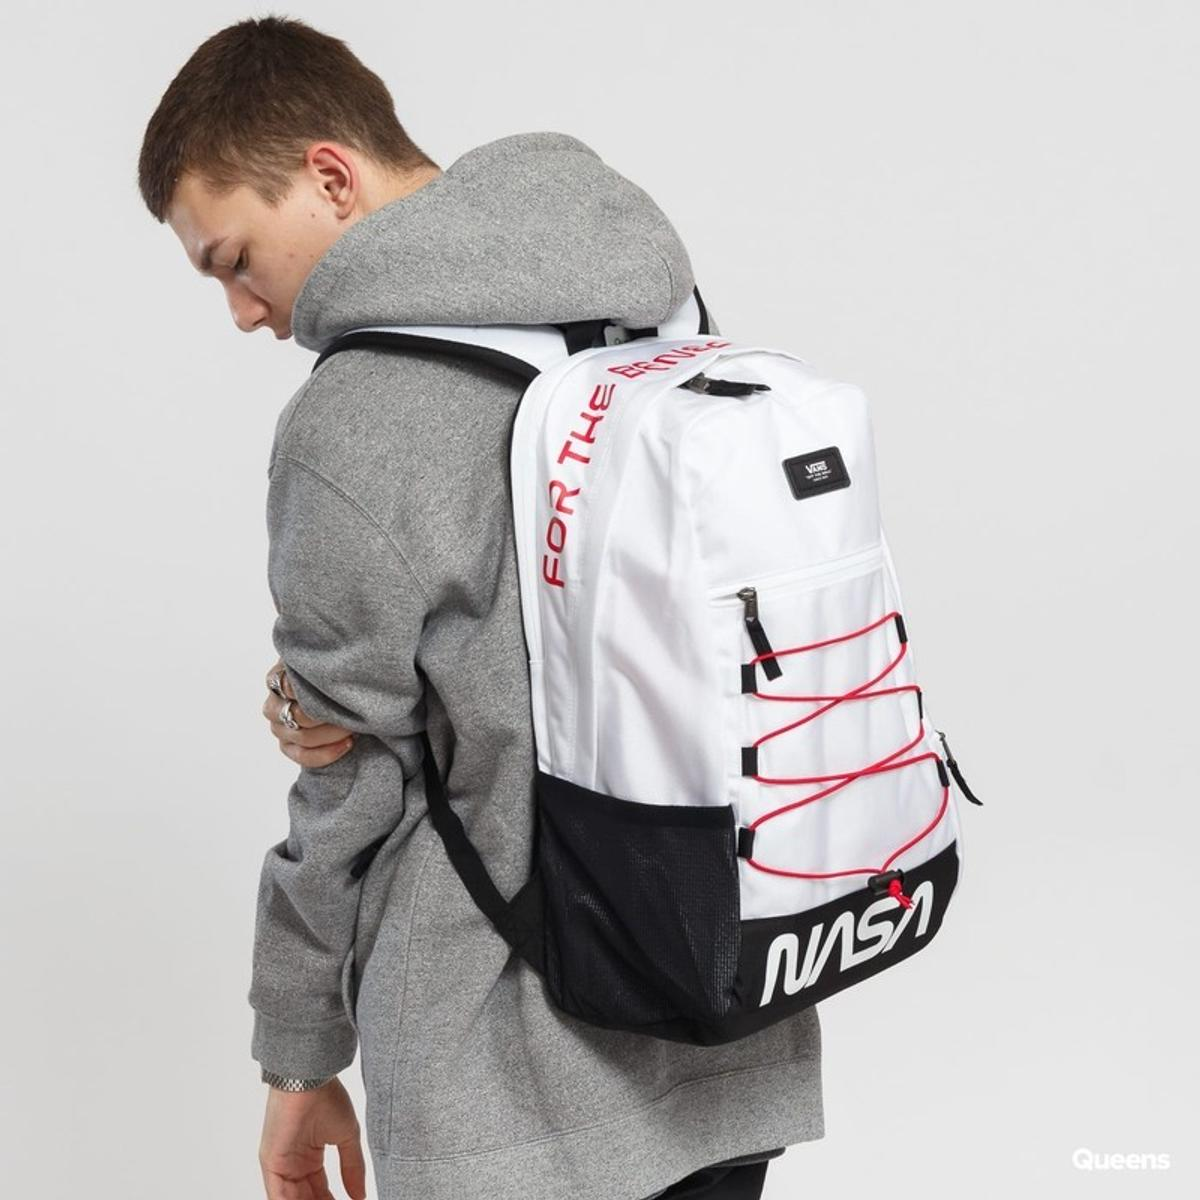 Vans x Nasa Snag Plus Space Voyager Backpack in 78462 Konstanz für ...